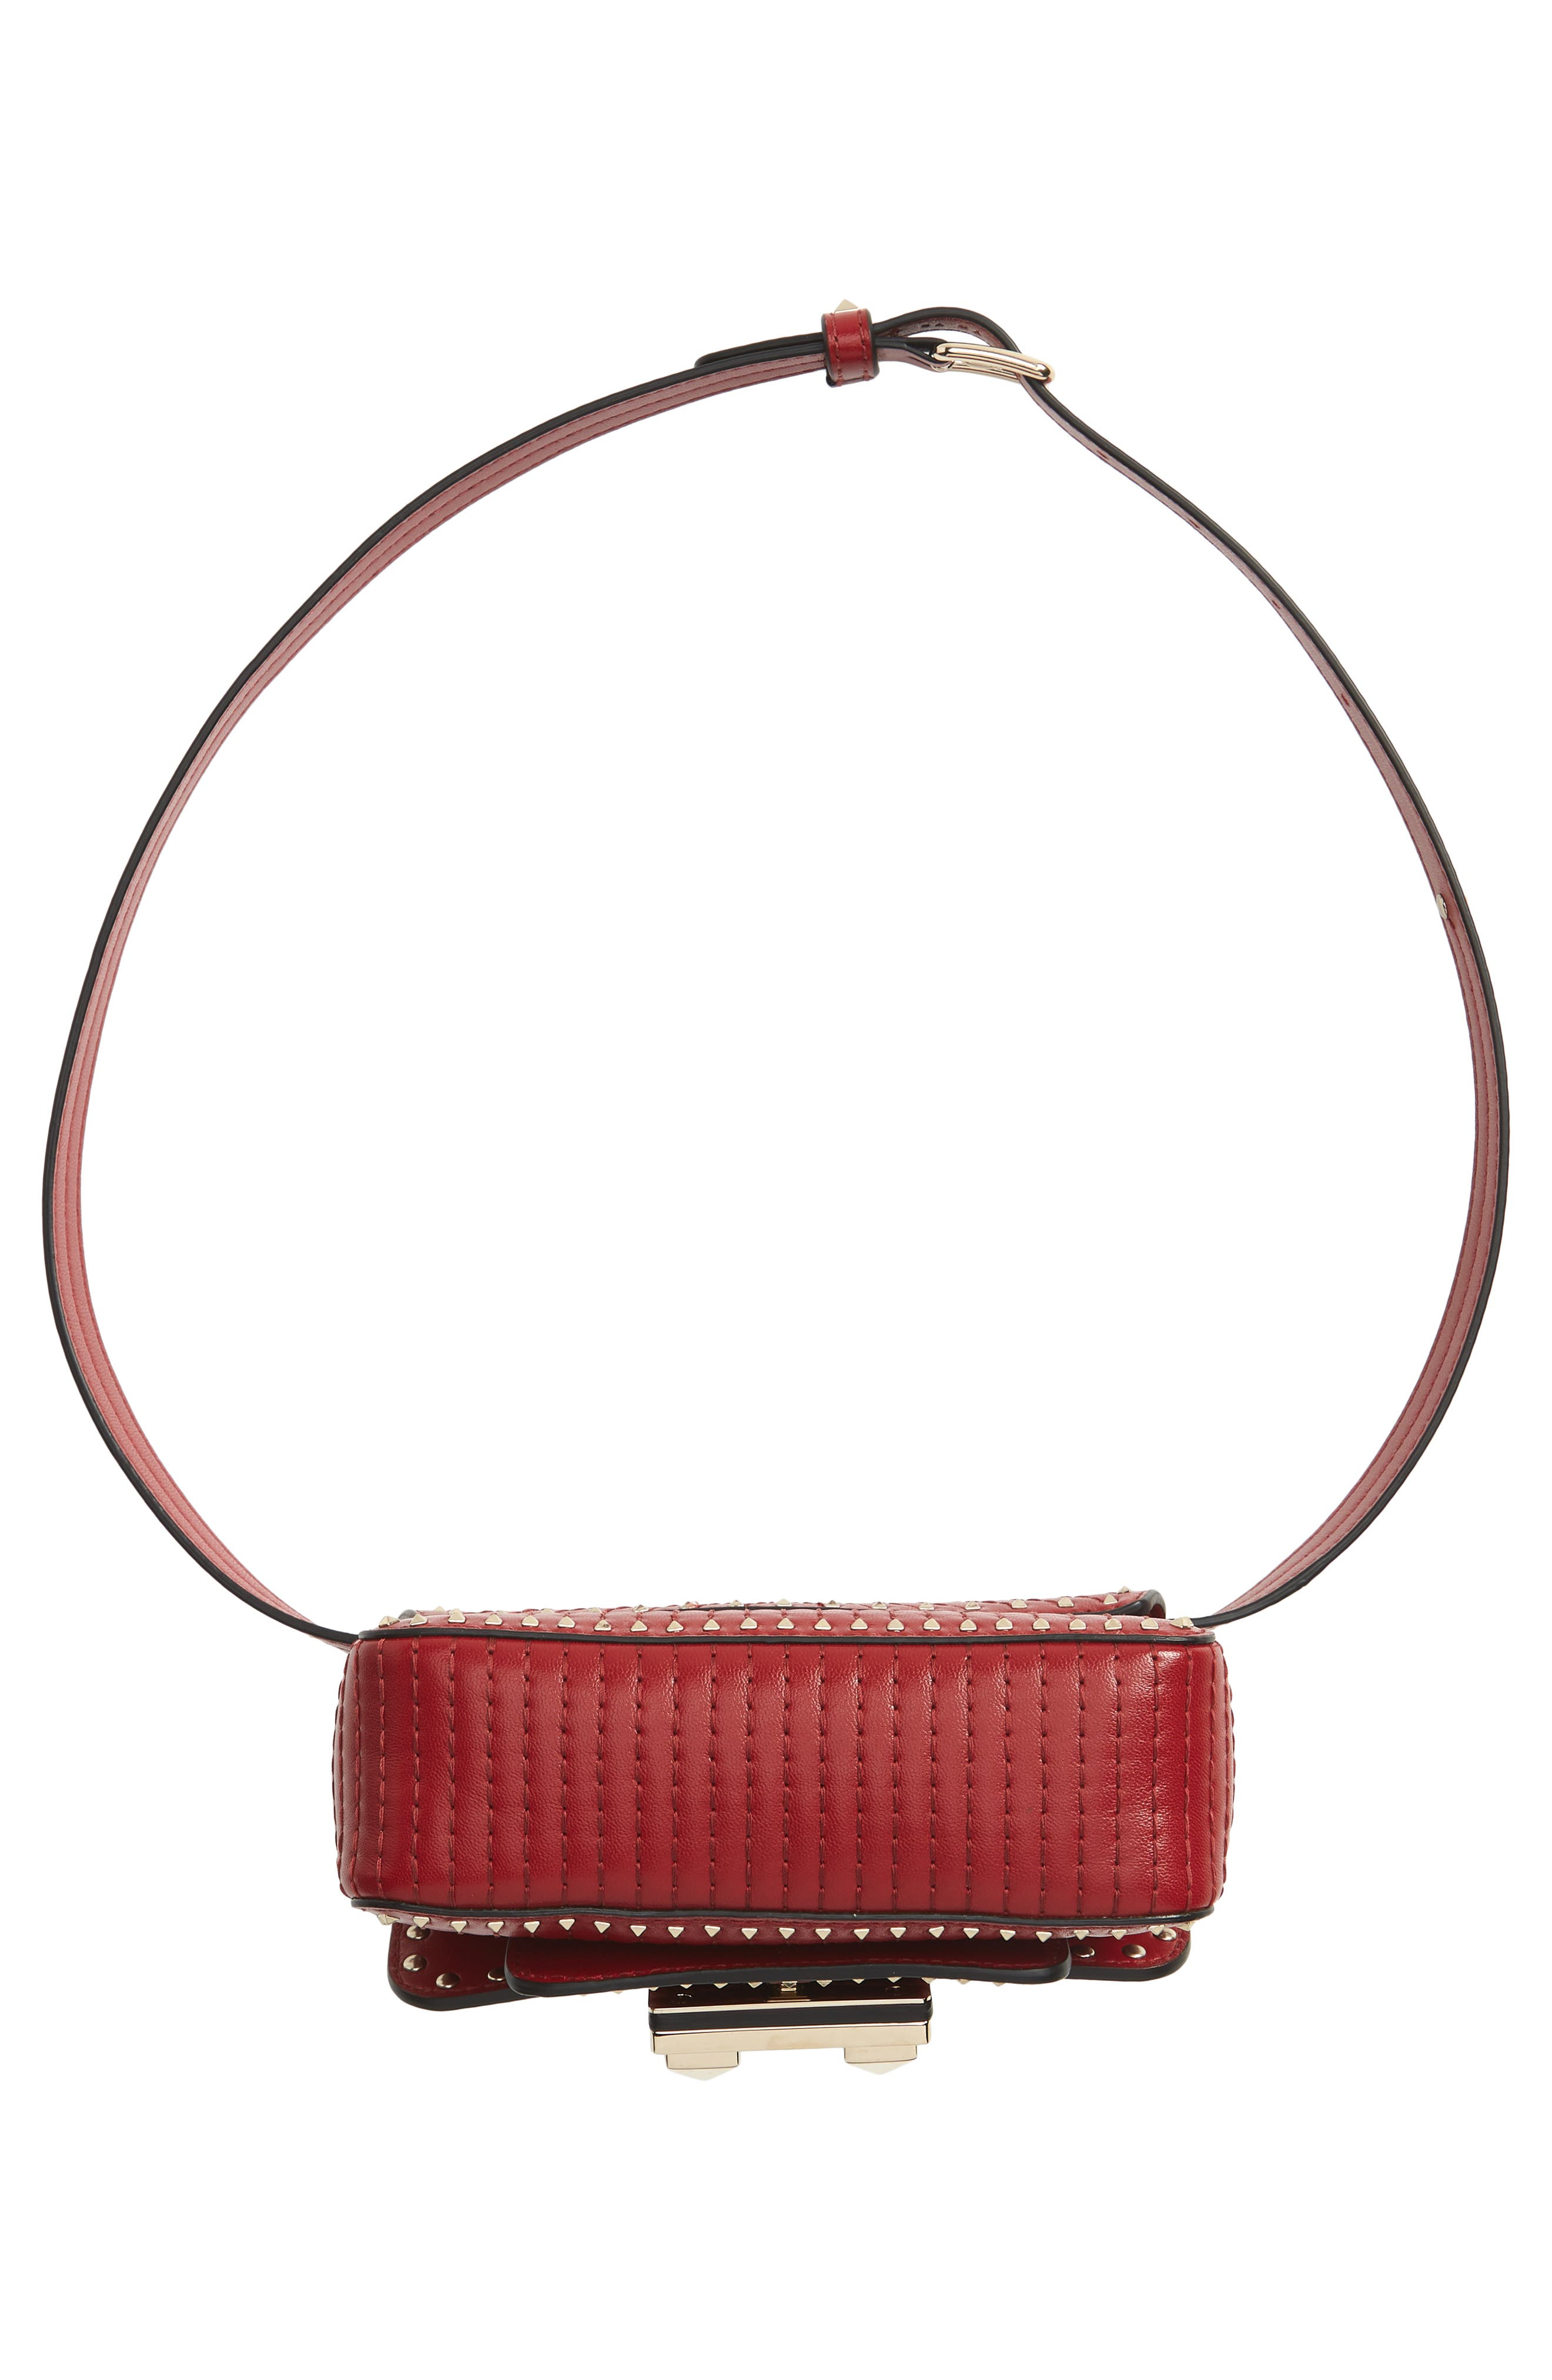 Mini Ziggystud Leather Convertible Crossbody/Belt Bag,                             Alternate thumbnail 8, color,                             Rosso